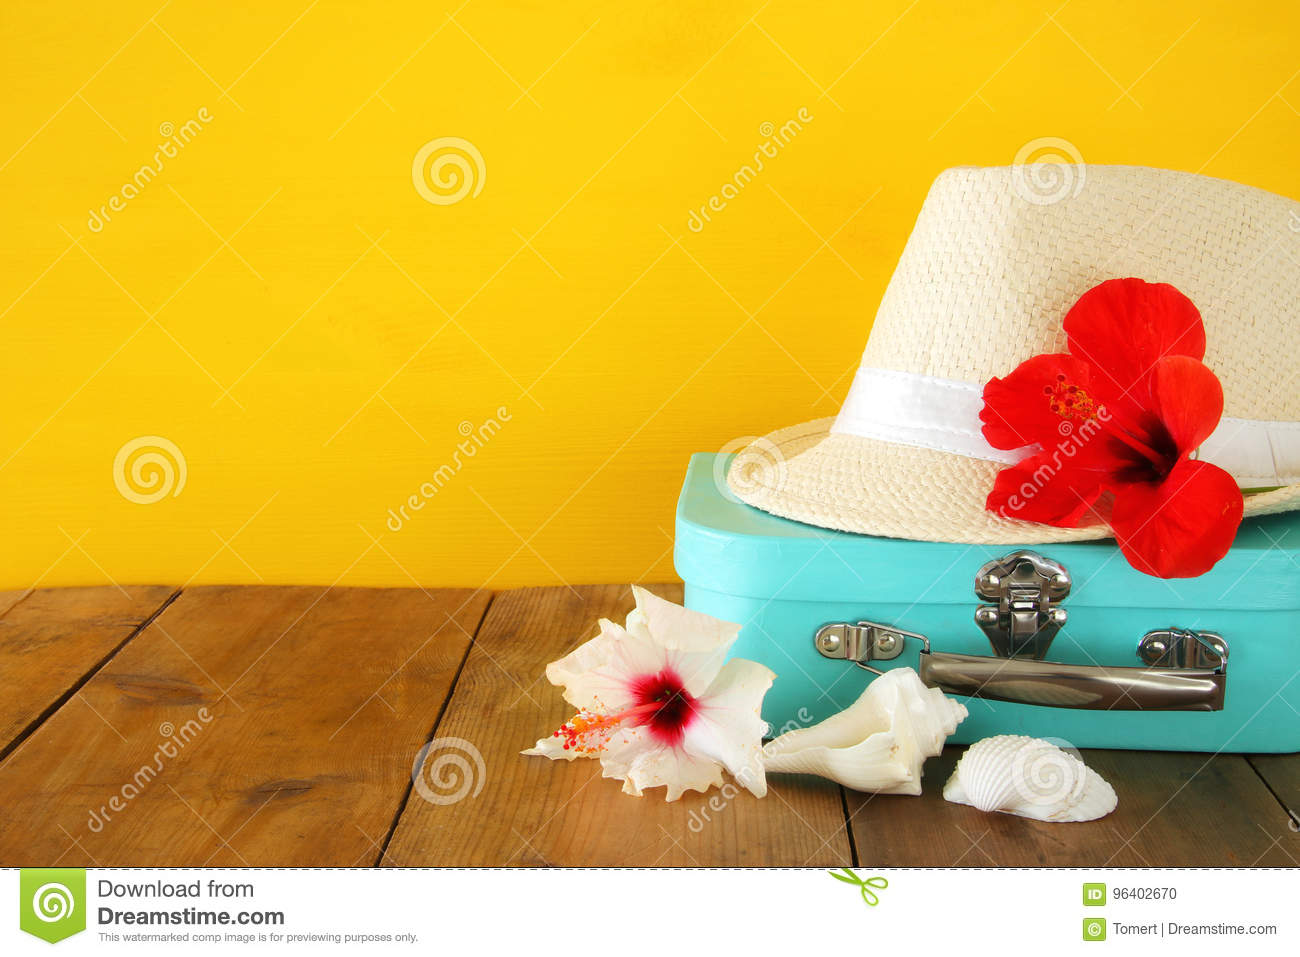 Fedora hat, tropical hibiscus flower on wooden table. relaxation or vacation concept